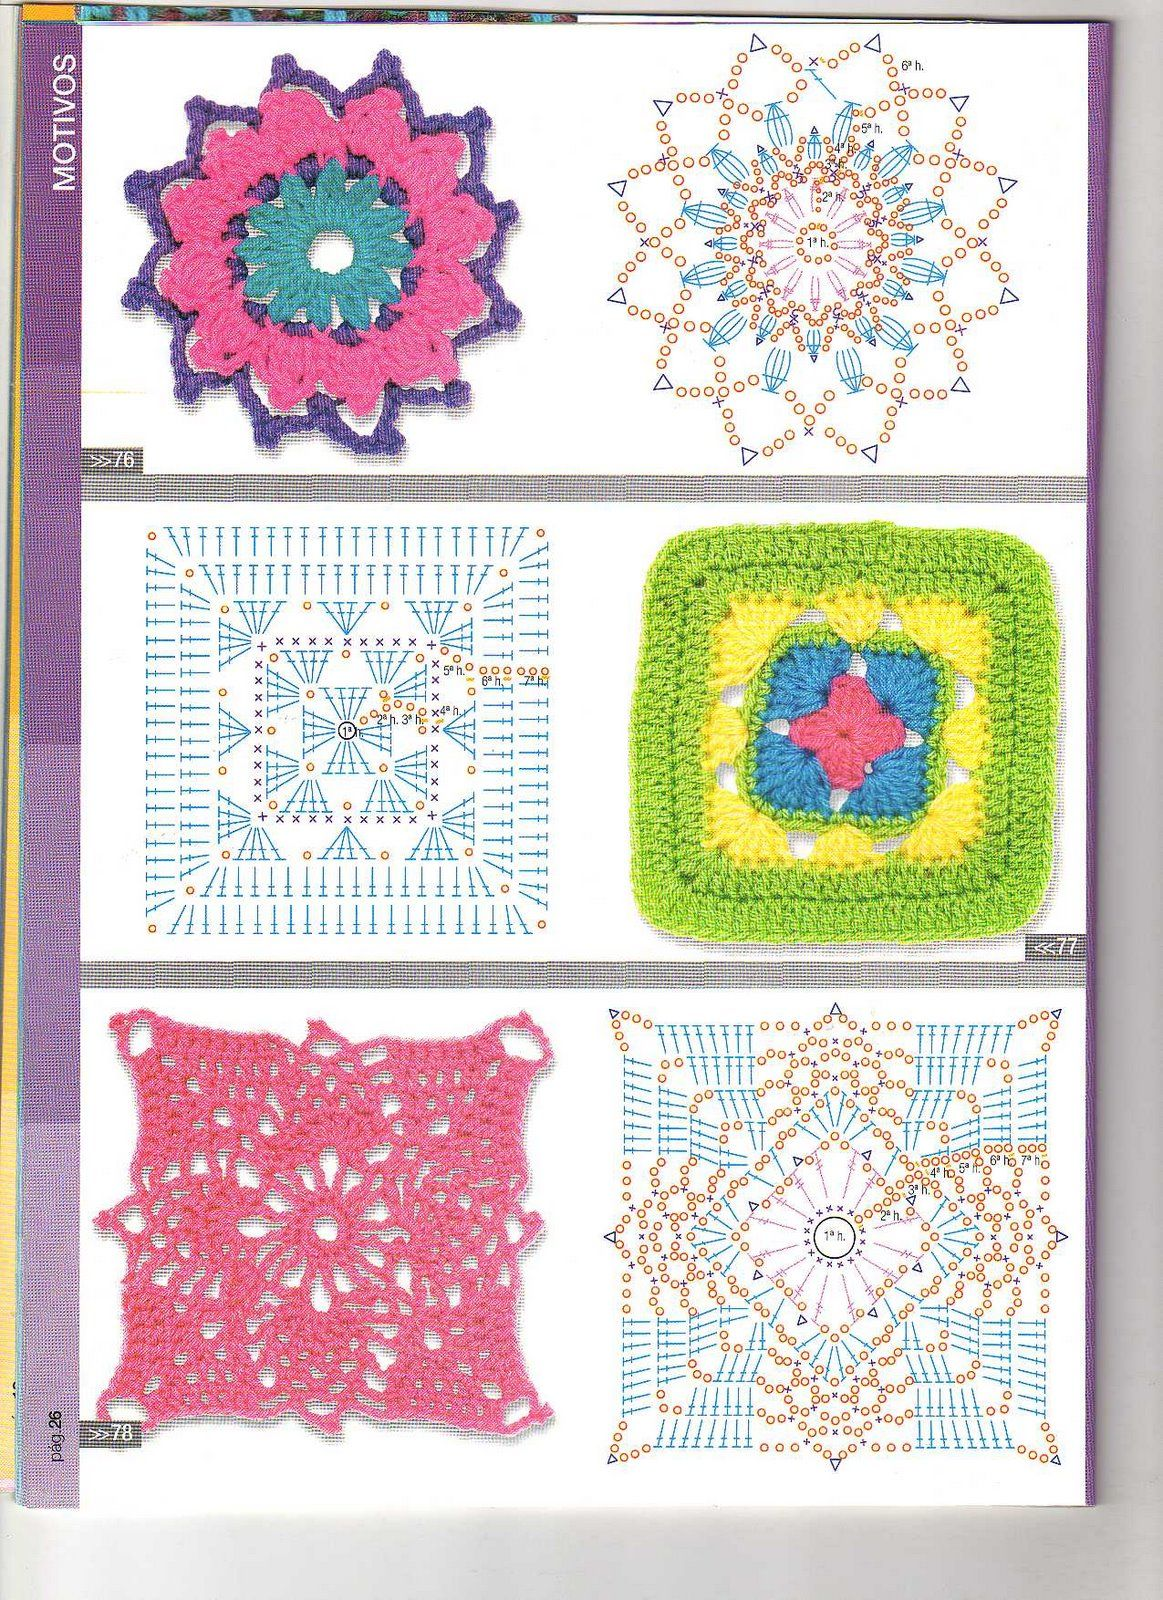 Patrones Crochet: Patron Crochet Manta Cuadrados | Crochet Patterns ...